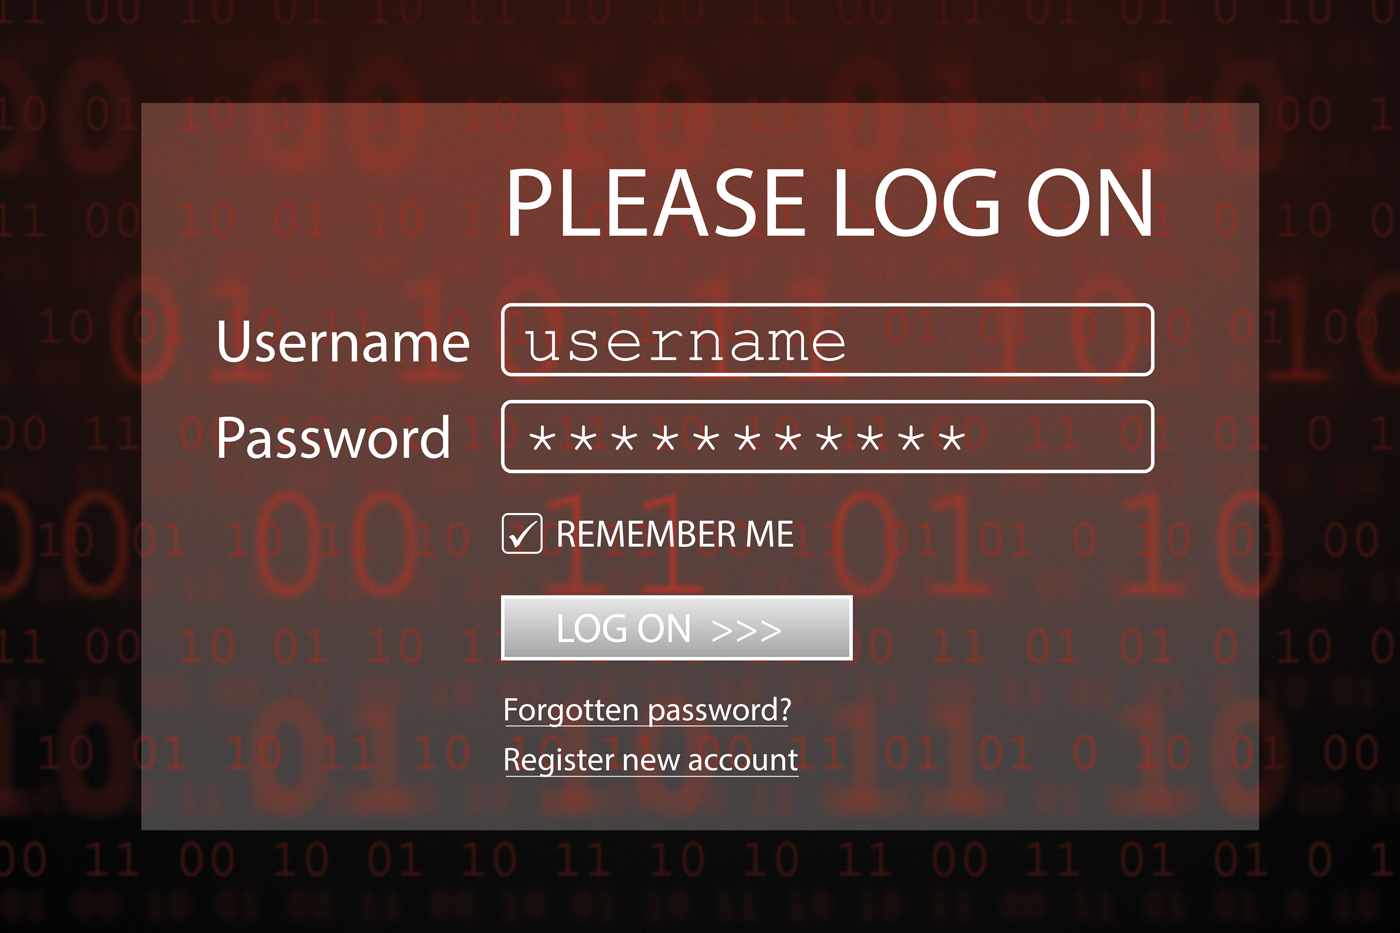 Stock image depicting a computer screen with username and password fields and a log on button.